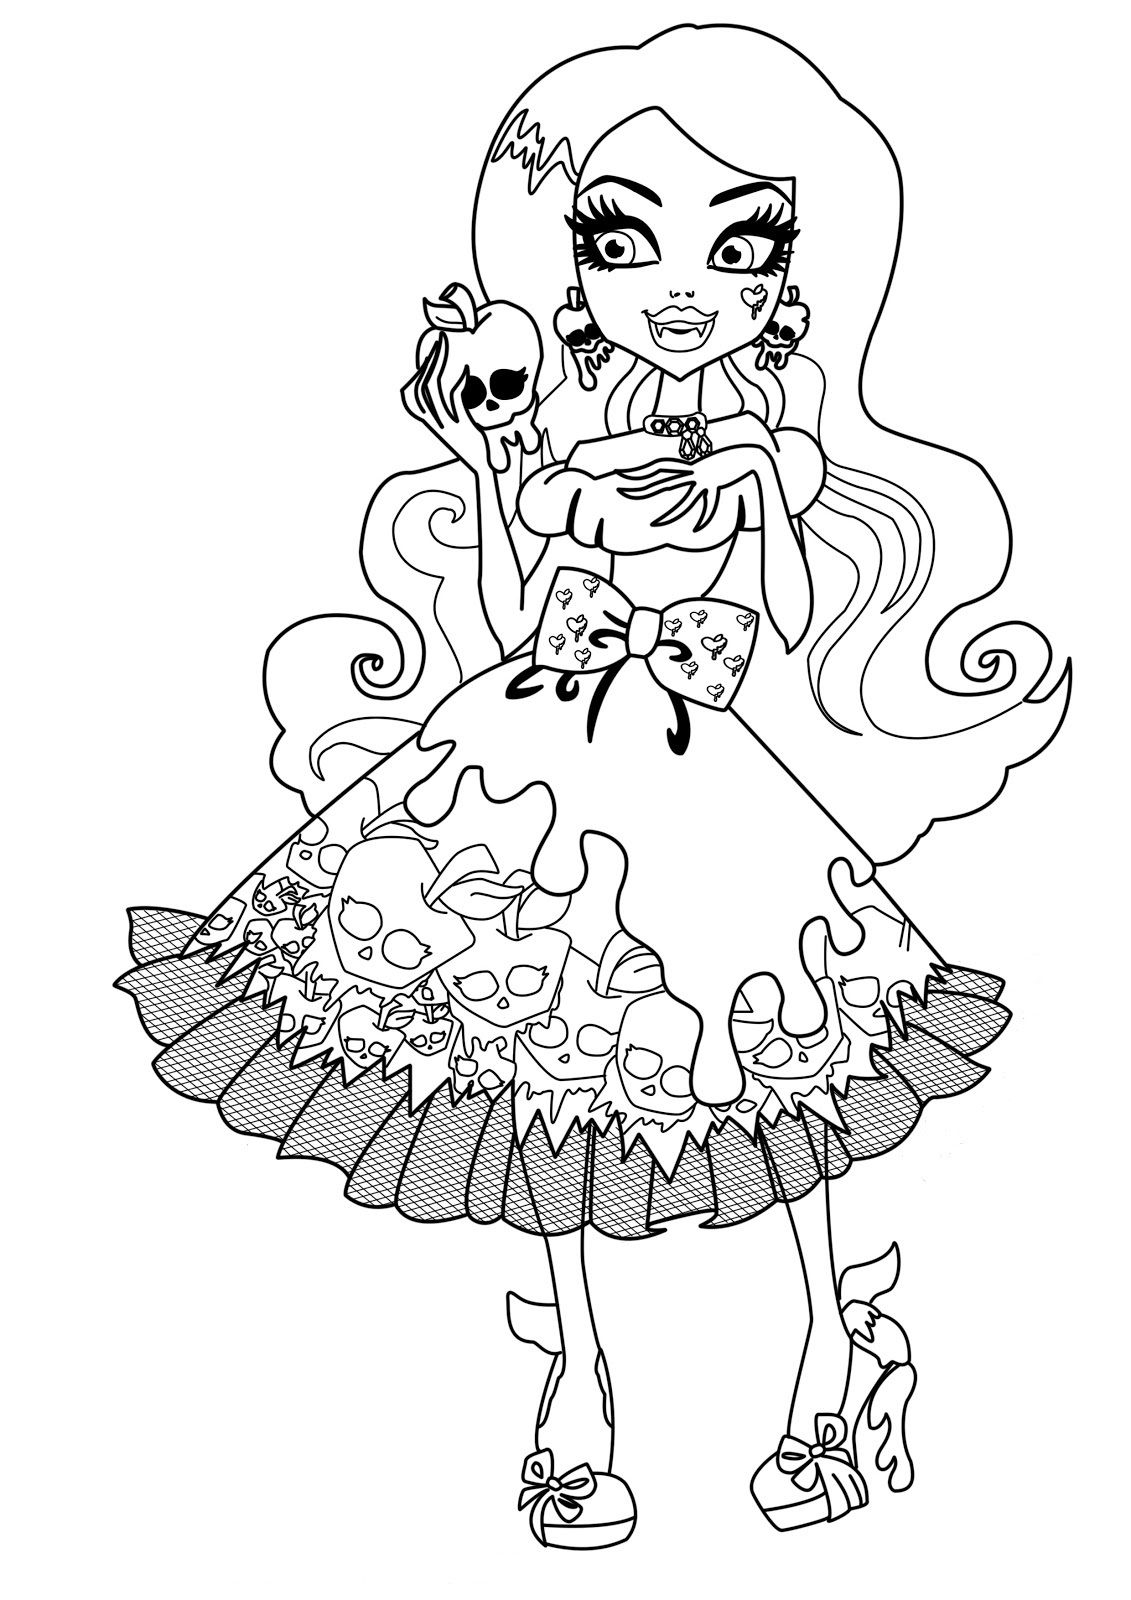 Draculaura Monster High Dolls Coloring Pages Monster High Coloring to Print Of Monster High Baby Coloring Pages 012 to Coloring Pages Collection